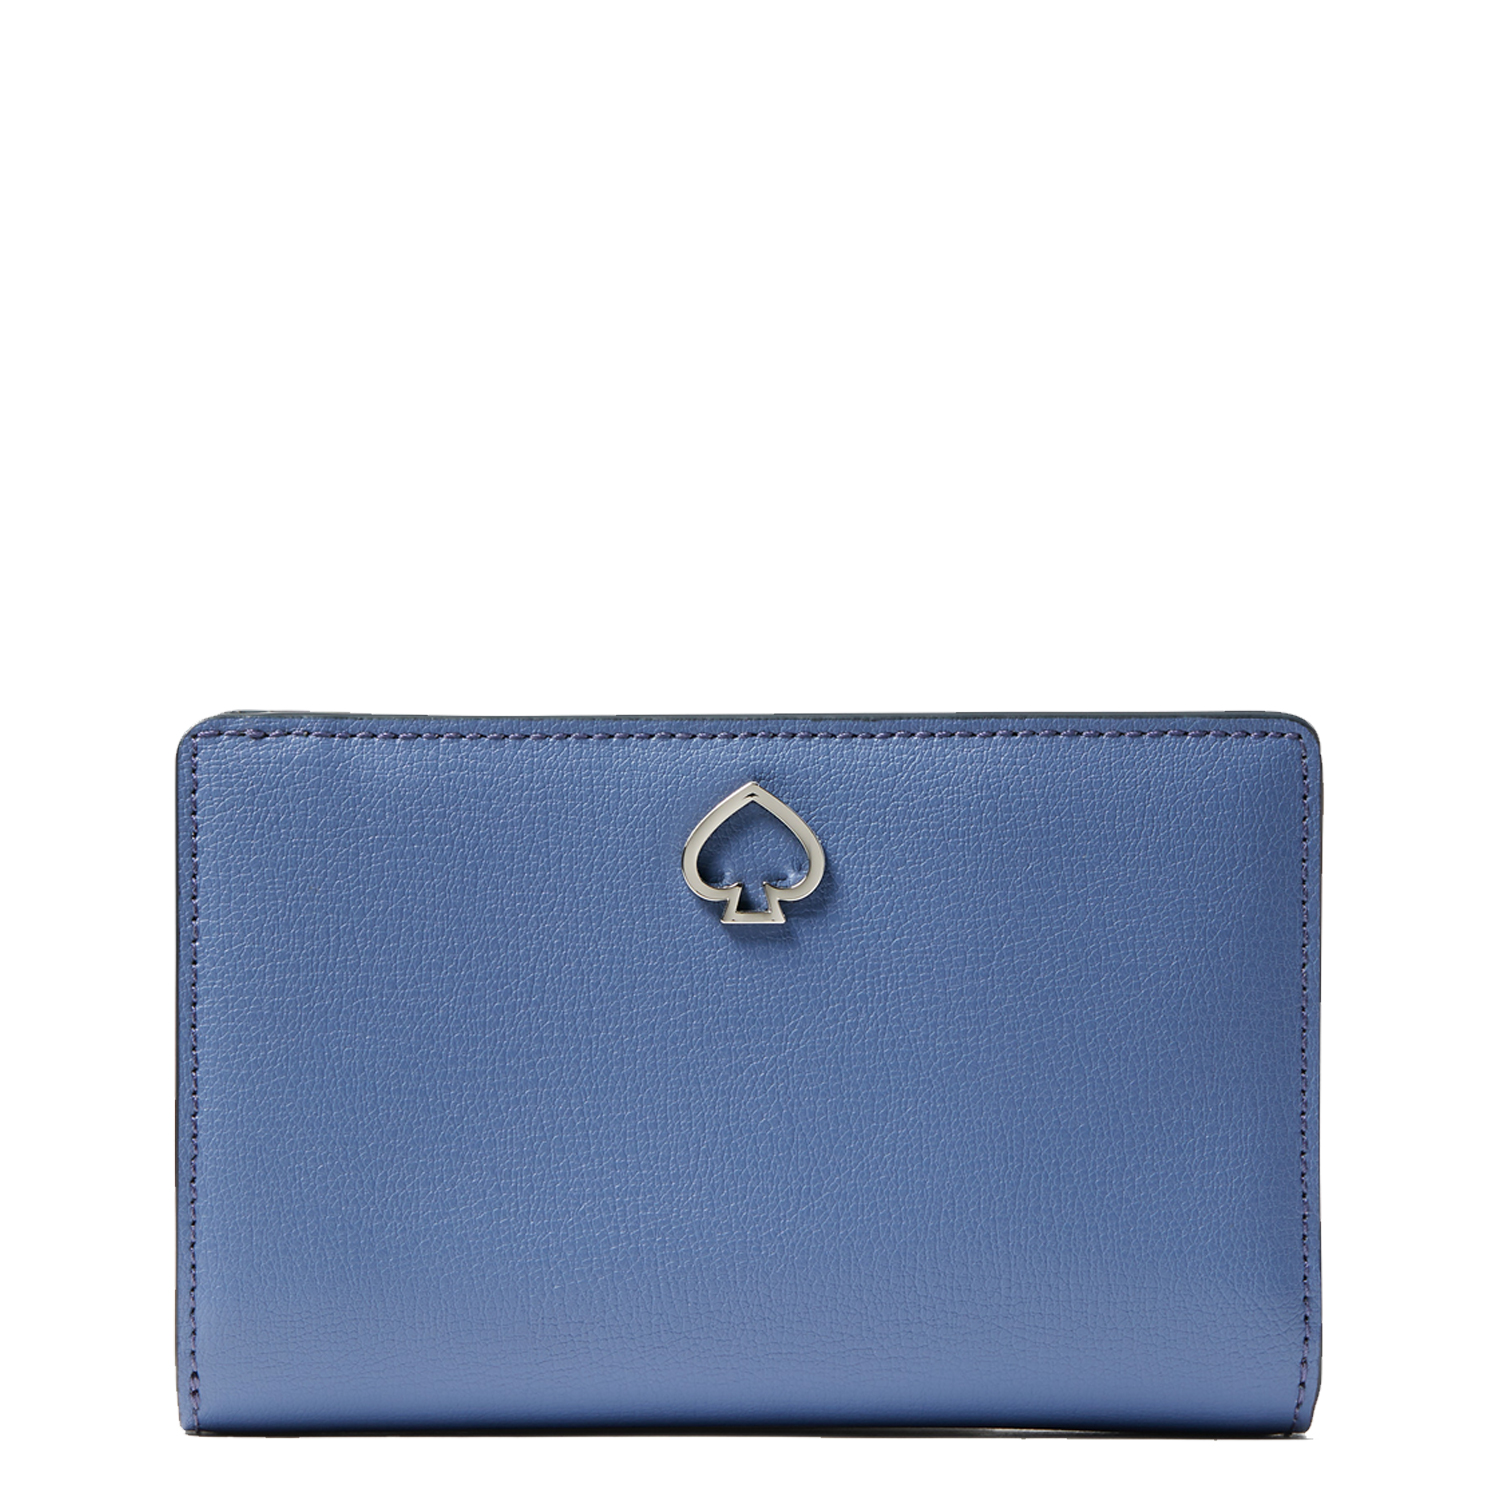 blue kate spade medium bifold wallet